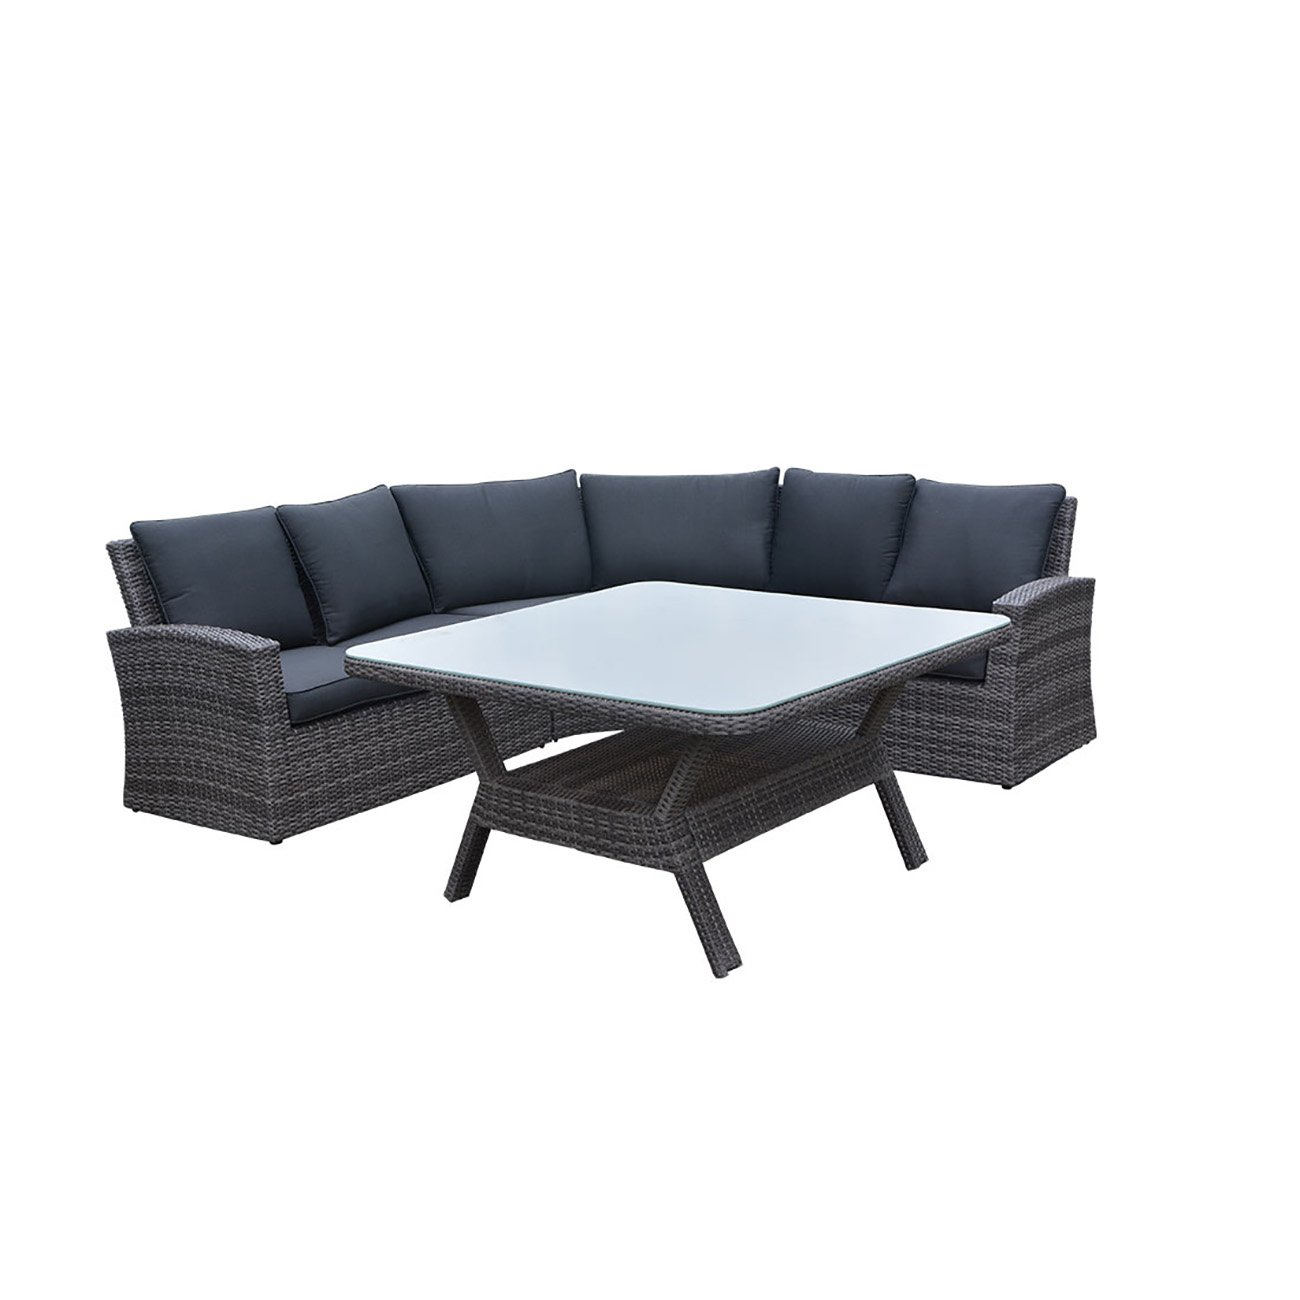 OUTLIV. Johannesburg Dininglounge 4tlg Organic Grey / Anthrazit Lounge Set